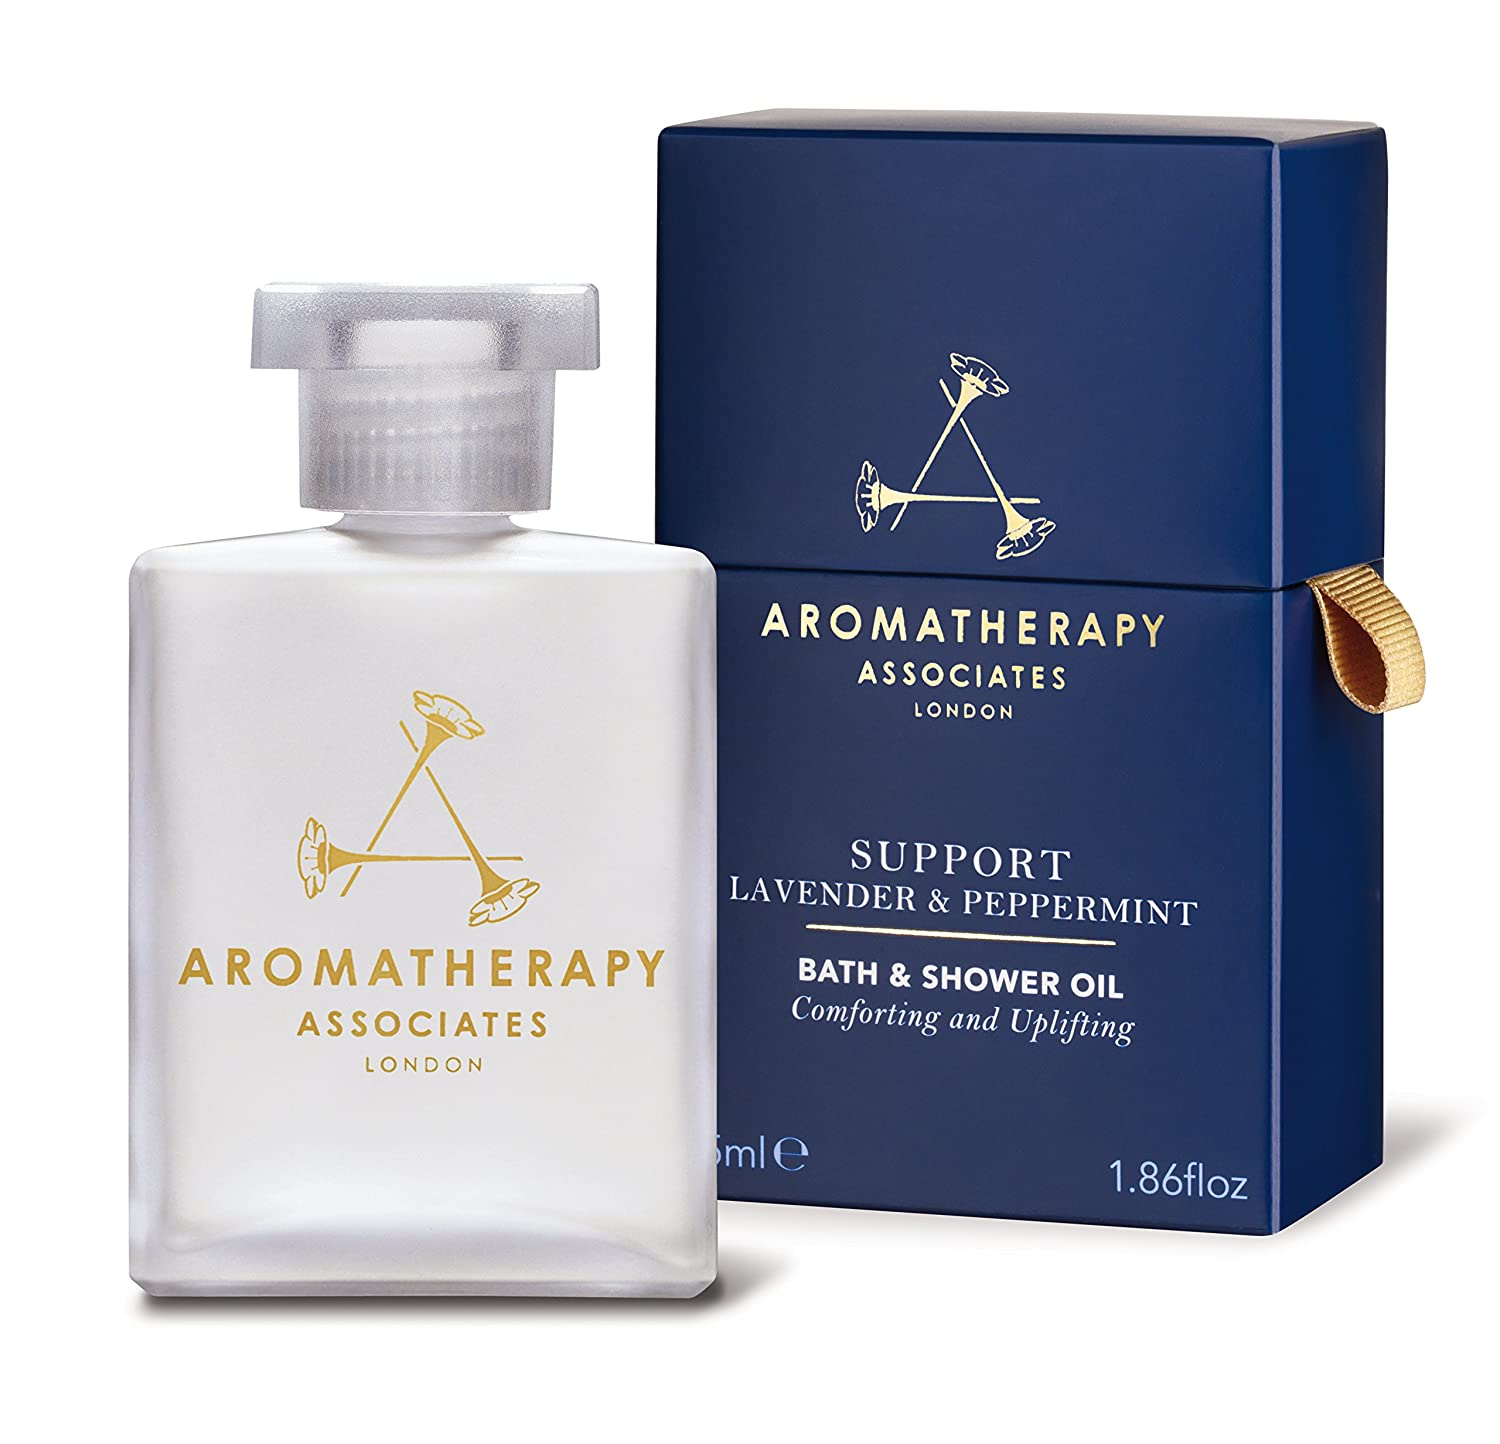 Aromatherapy Associates Support Lavender & Peppermint Bath And Shower Oil RN521055R